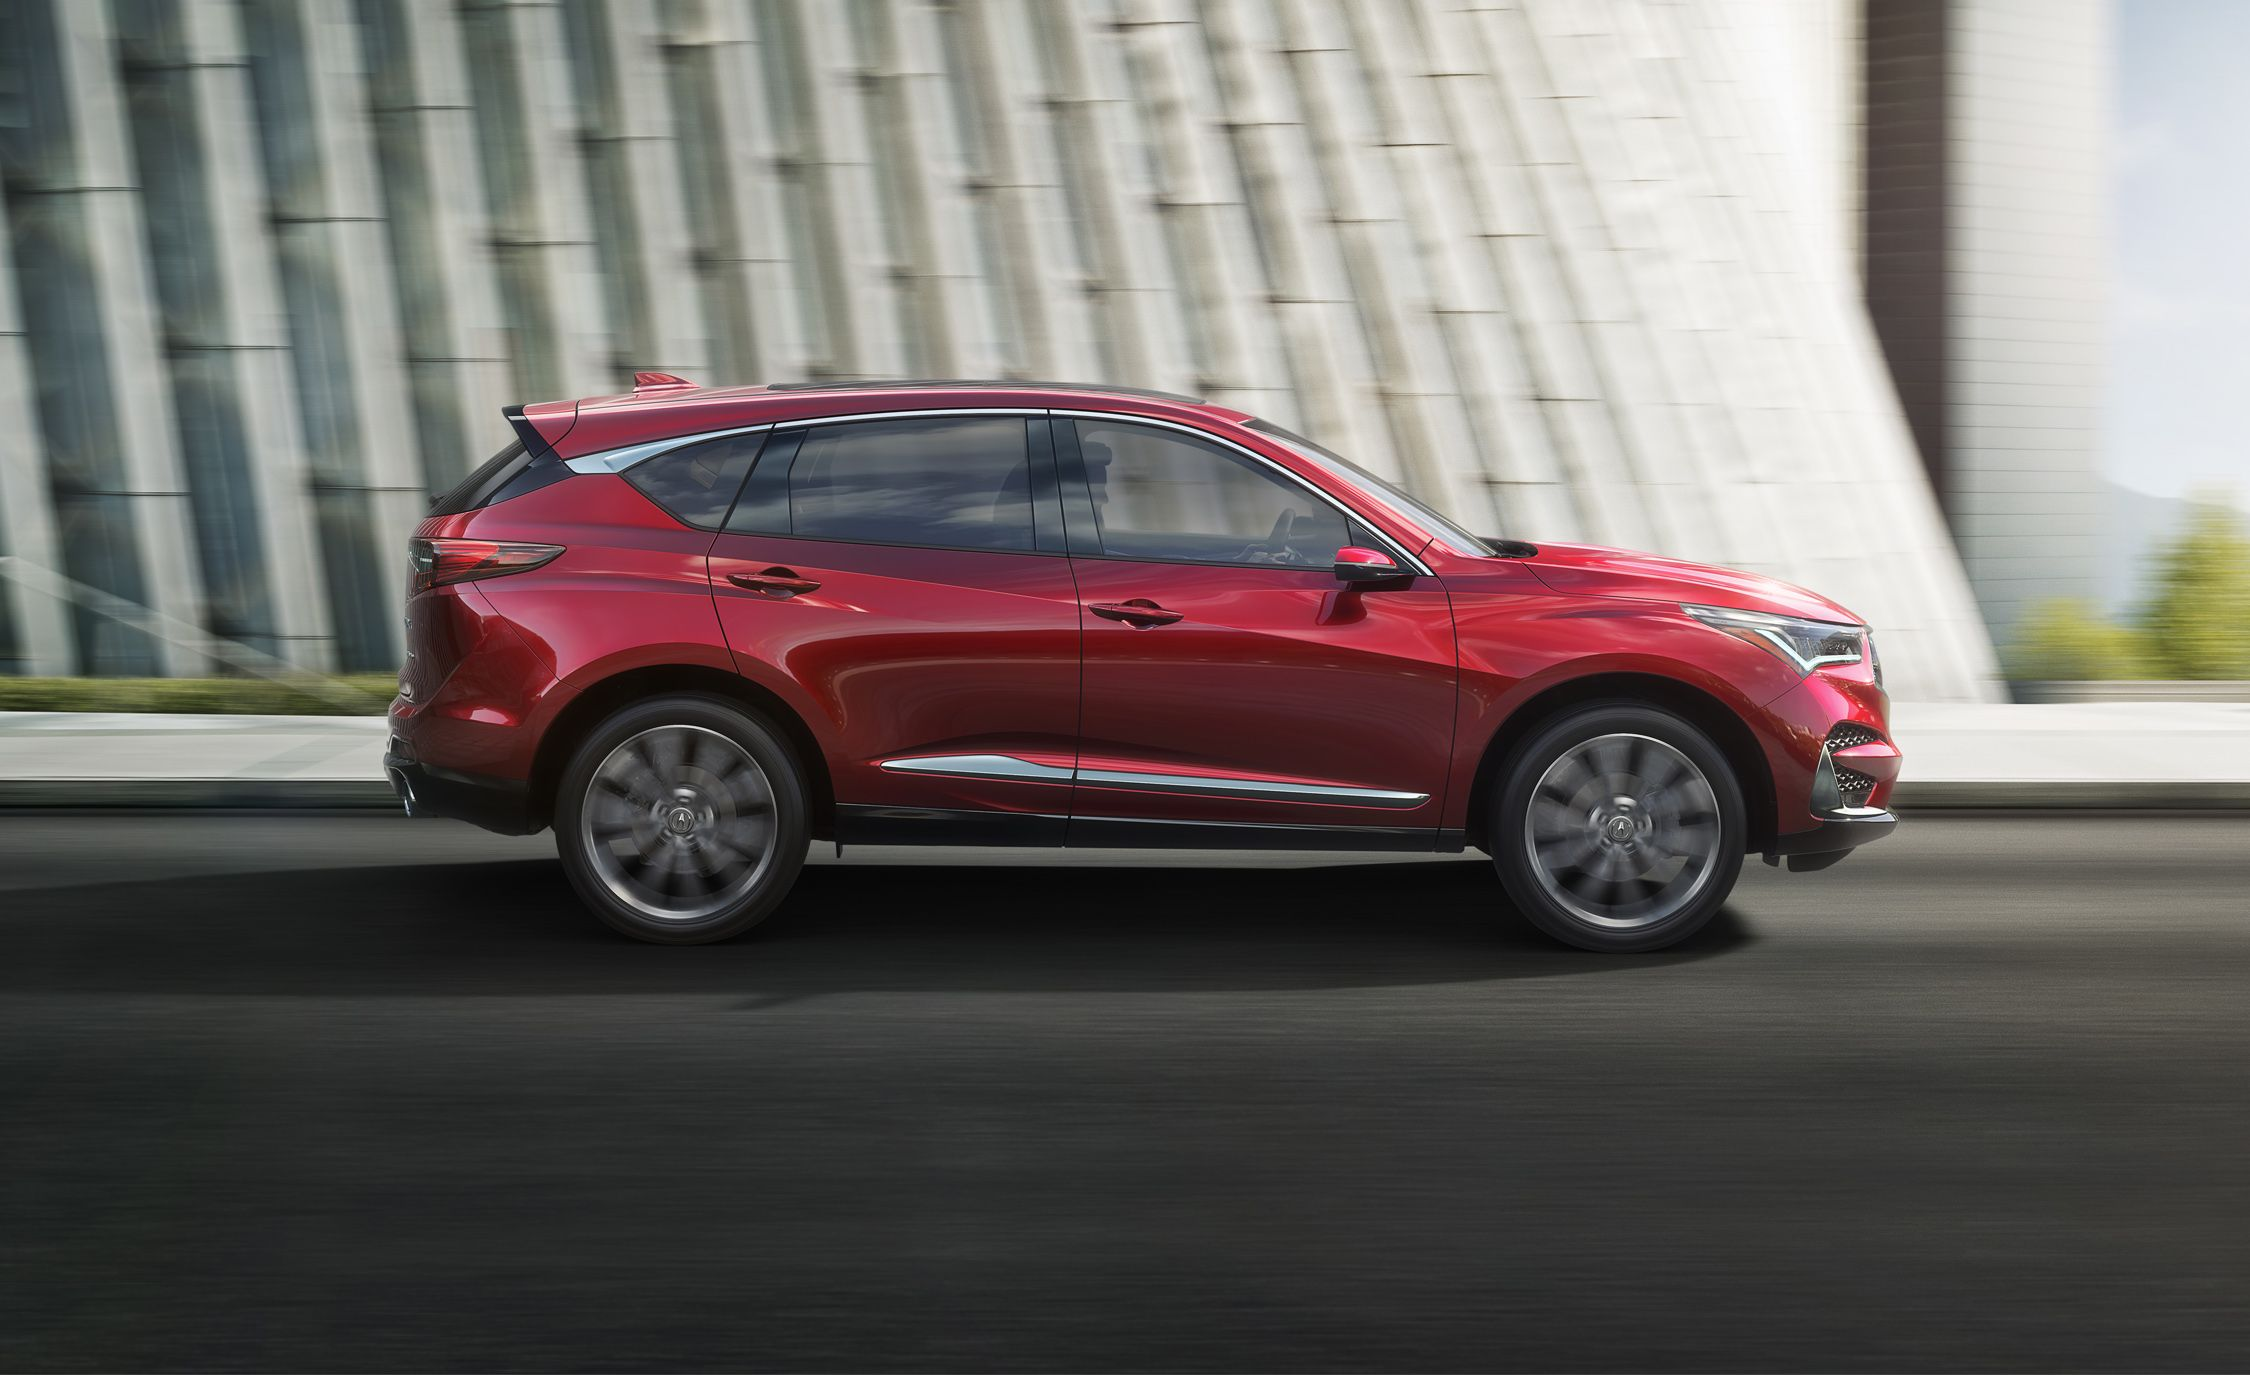 2019 Acura RDX Prototype: A Thinly Veiled Peek at the Production Model